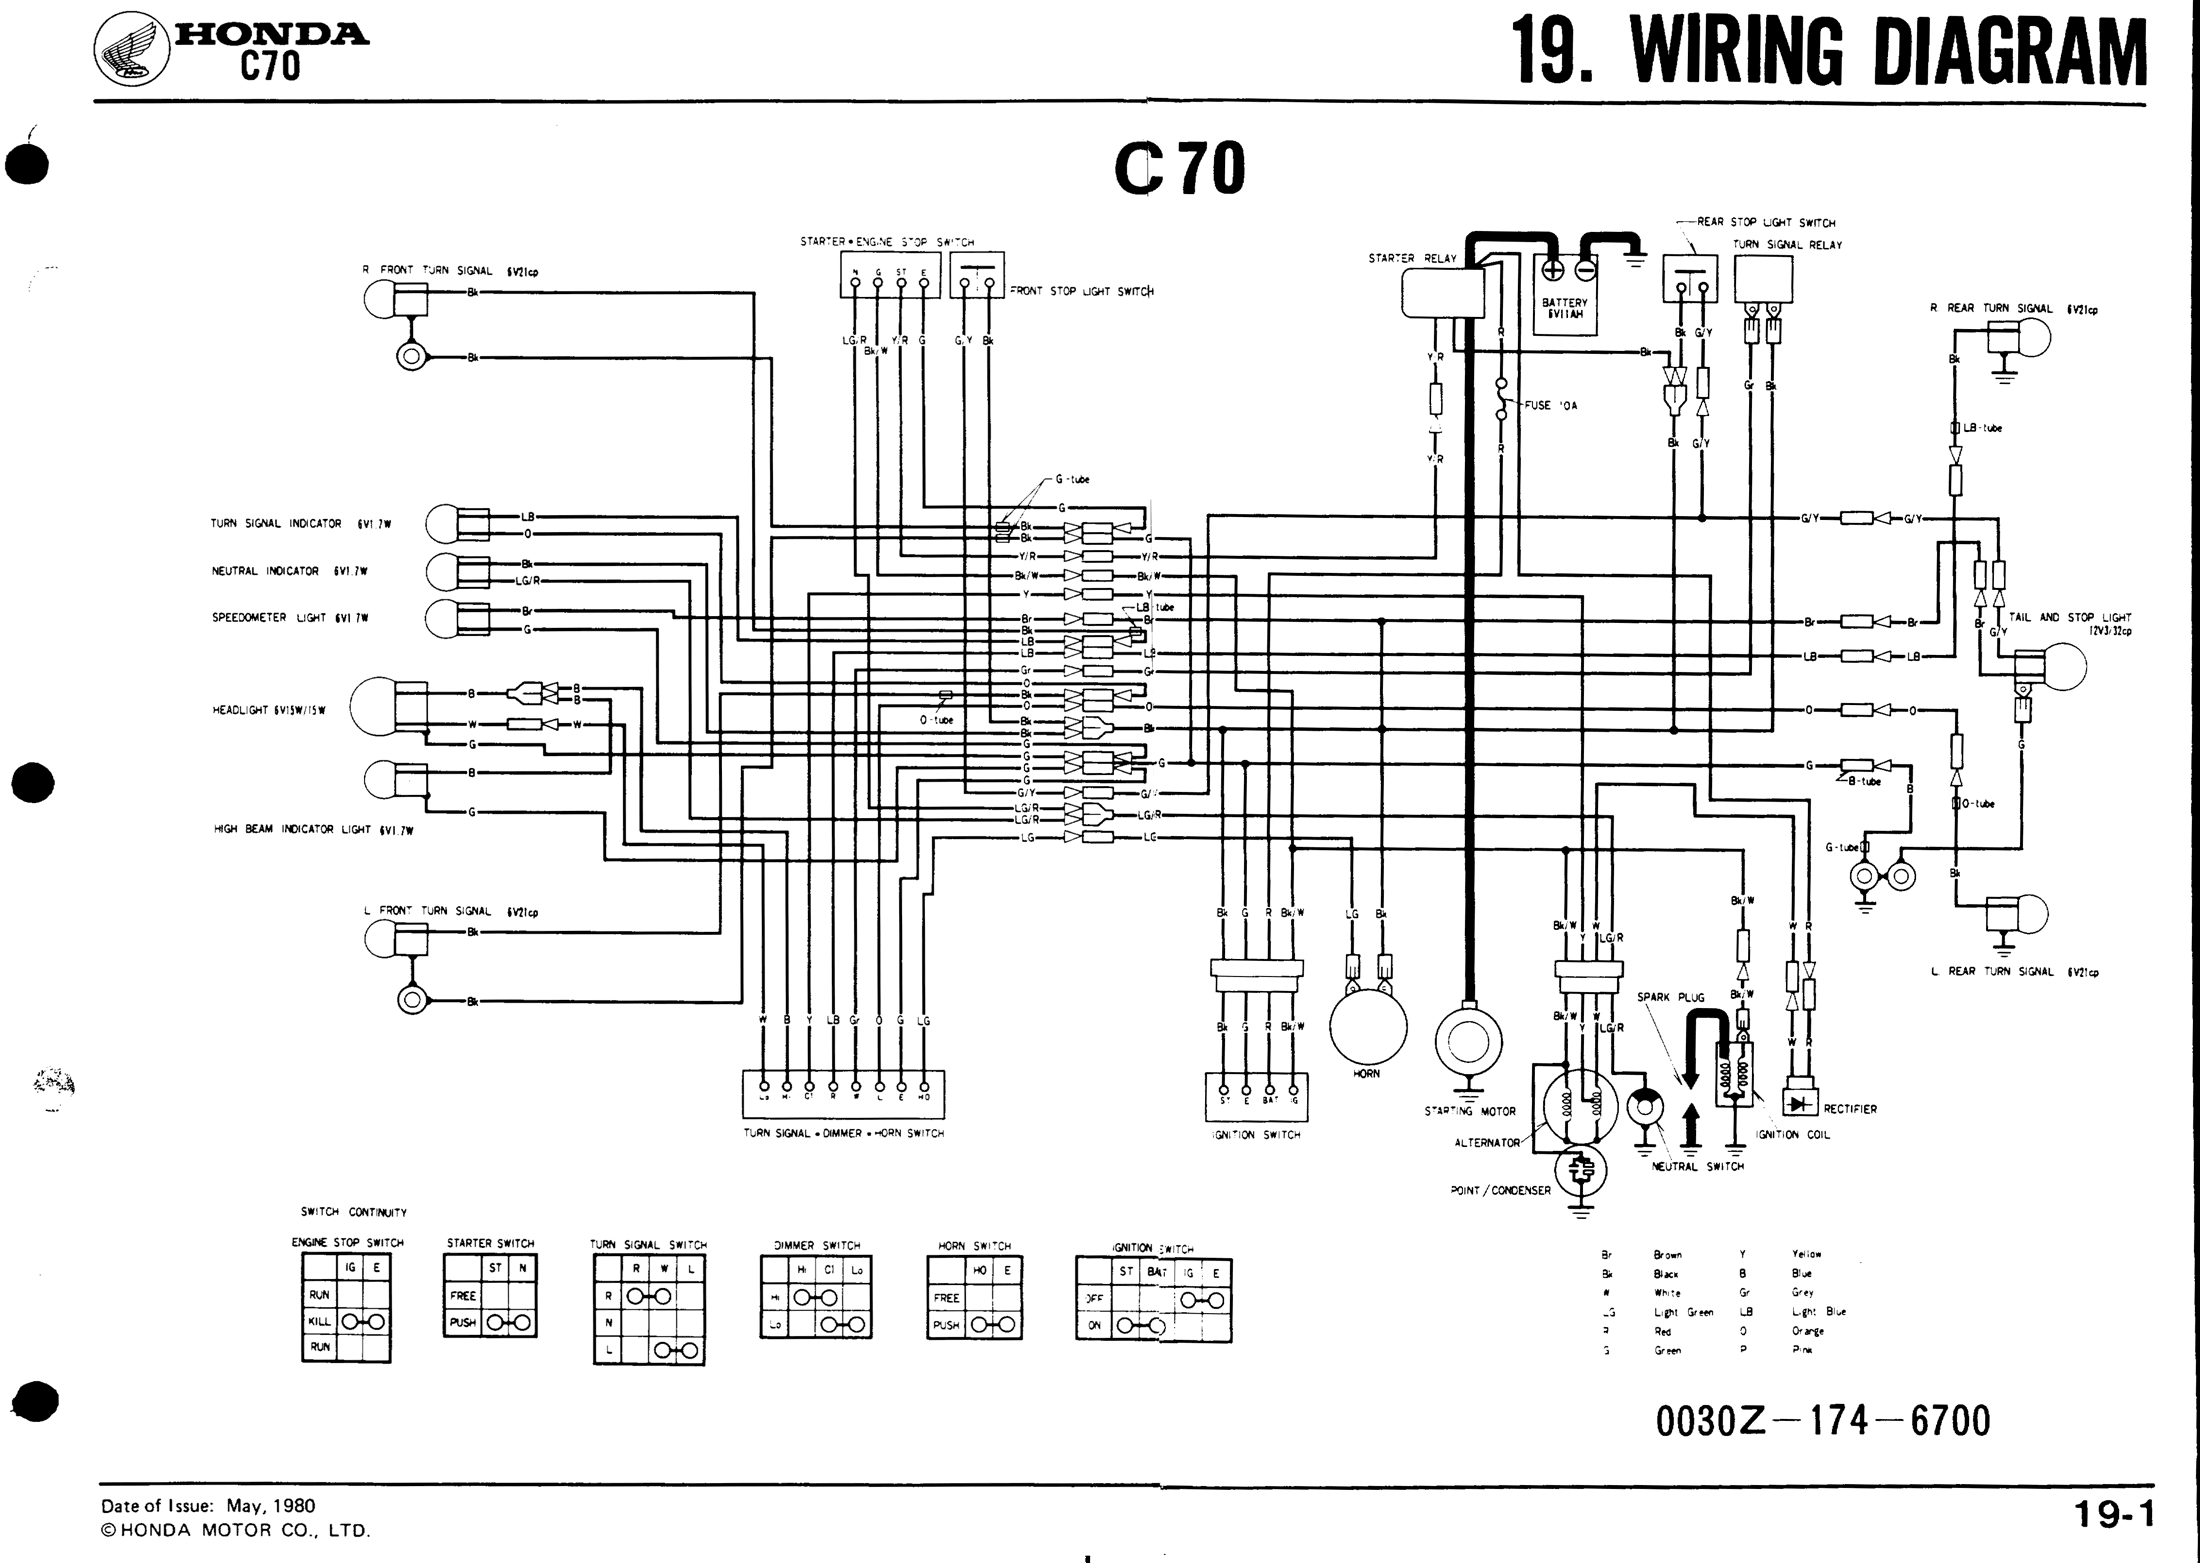 1981 honda passport wiring diagram wiring diagram and fuse box honda parts moreover 150 c70 in addition 1980 honda cb750k wiring diagram as well wiring diagram asfbconference2016 Image collections